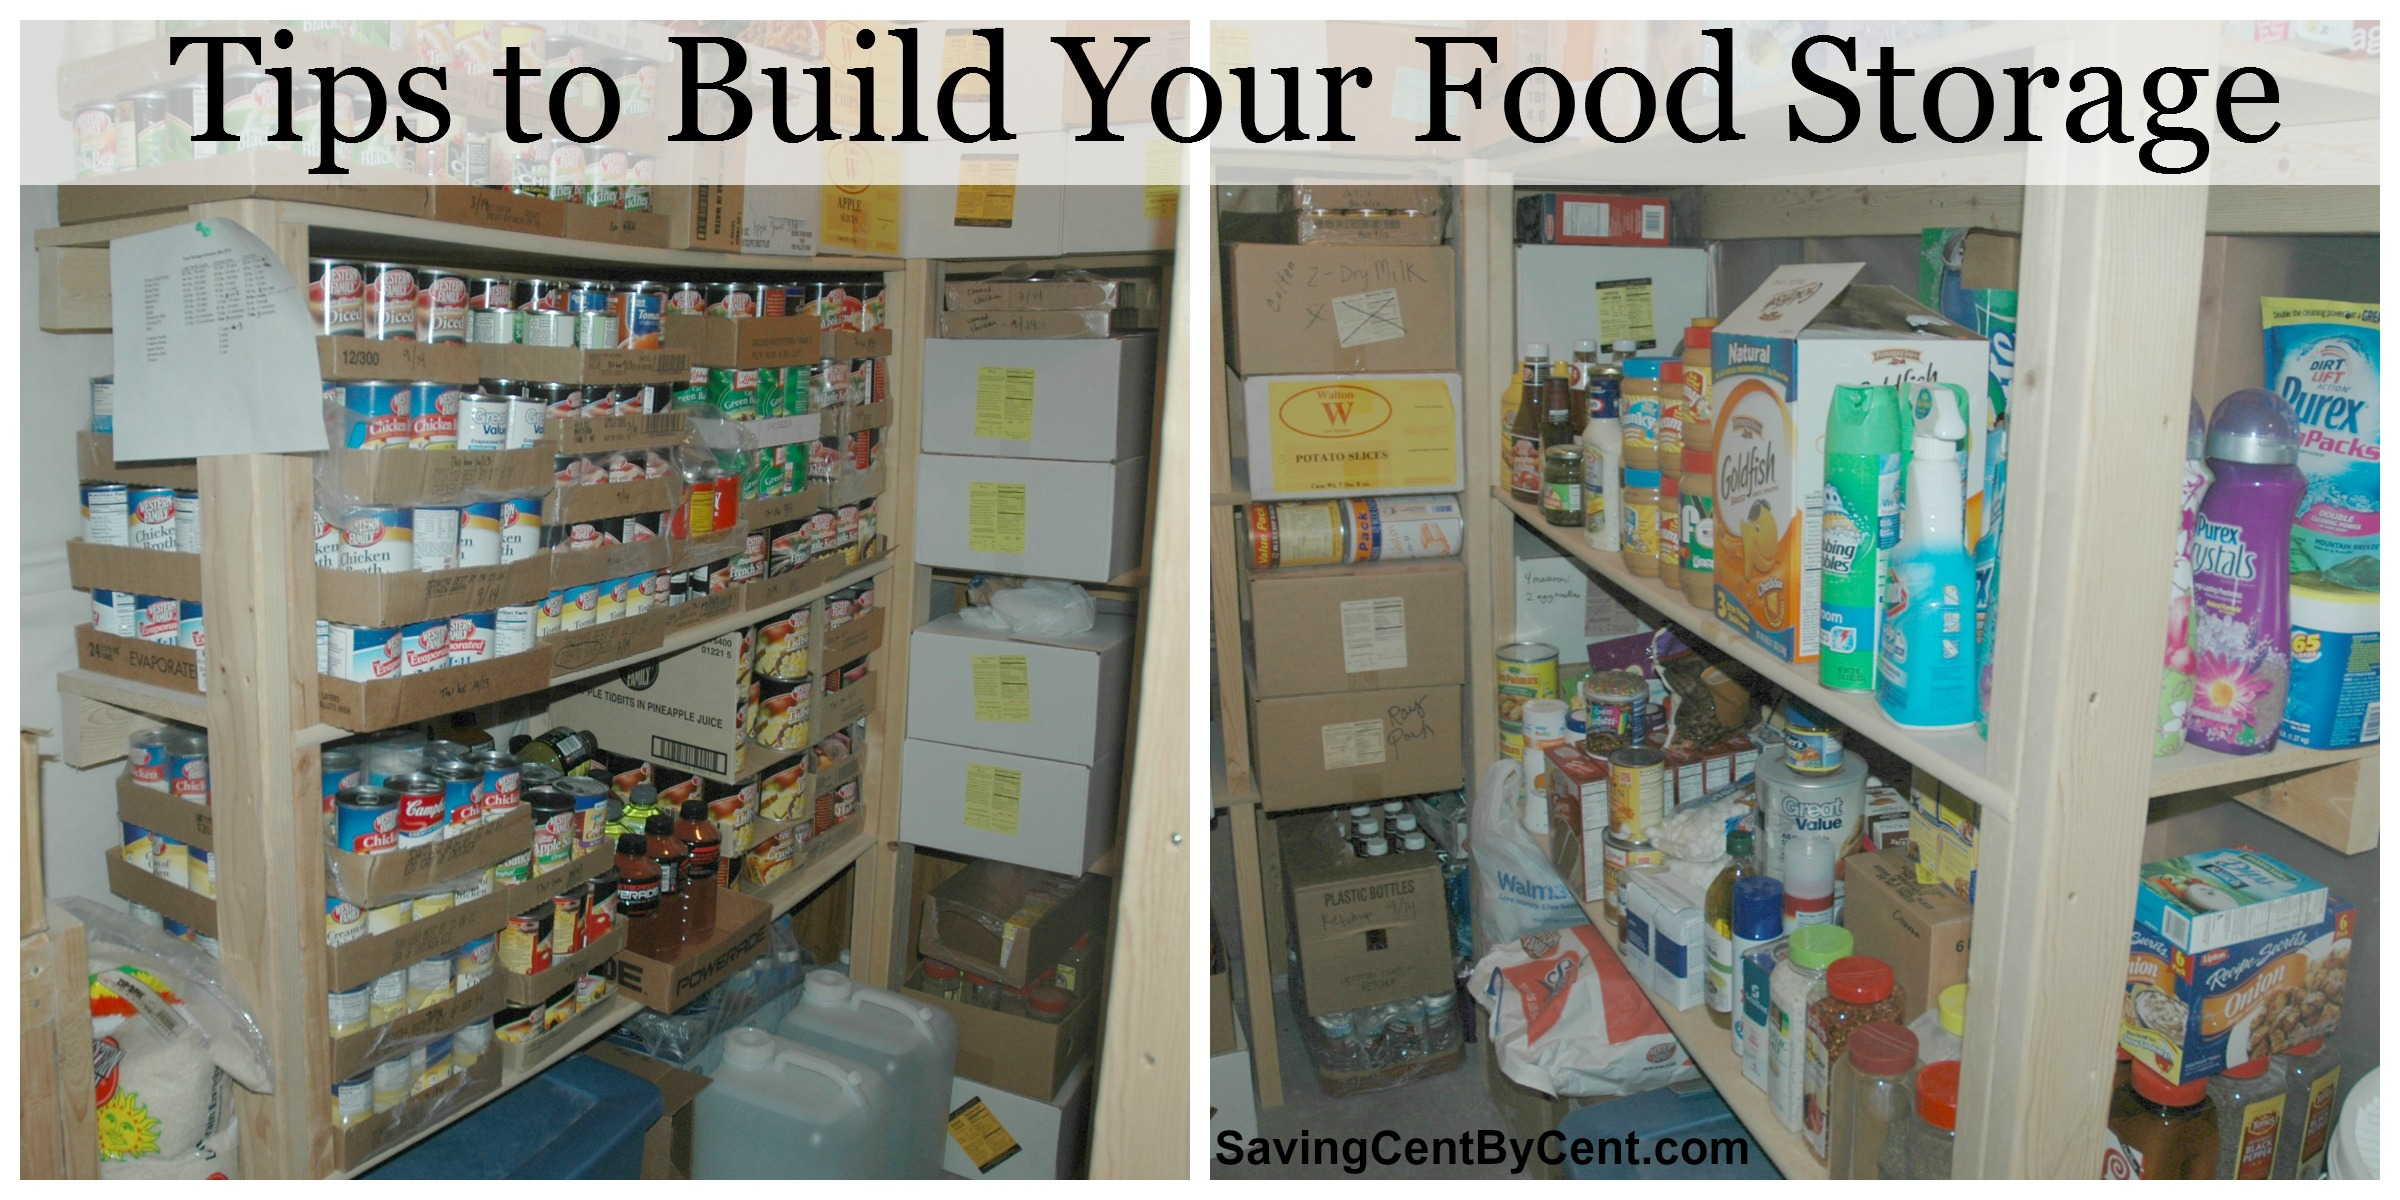 Tips to Build Your Food Storage Final The month of September is emergency preparedness ... & Tips to Build Your Food Storage + The Ready Store Giveaway ($300 ...